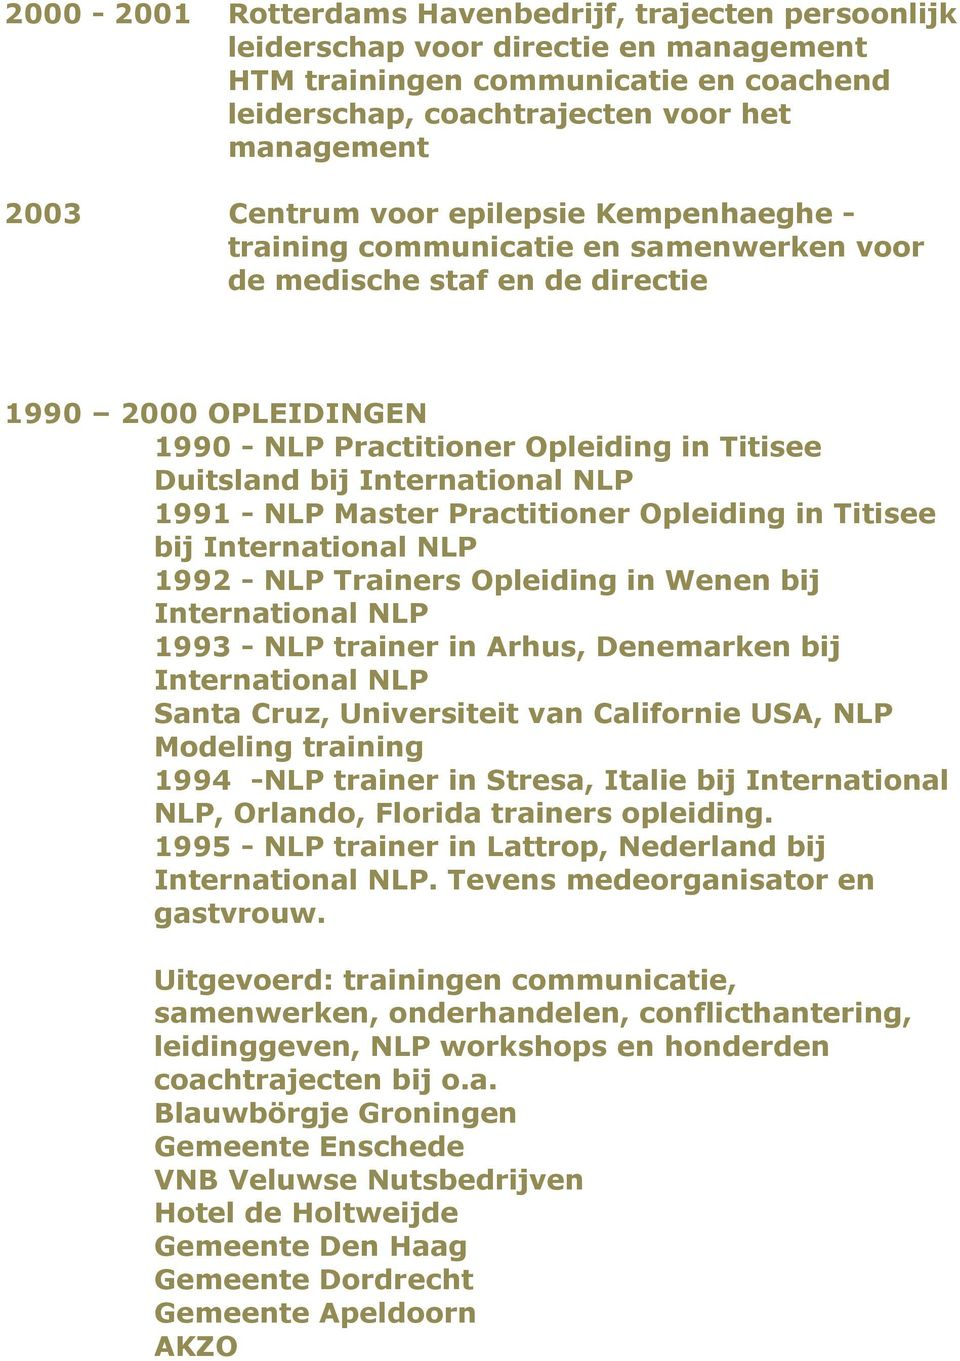 NLP 1991 - NLP Master Practitioner Opleiding in Titisee bij International NLP 1992 - NLP Trainers Opleiding in Wenen bij International NLP 1993 - NLP trainer in Arhus, Denemarken bij International